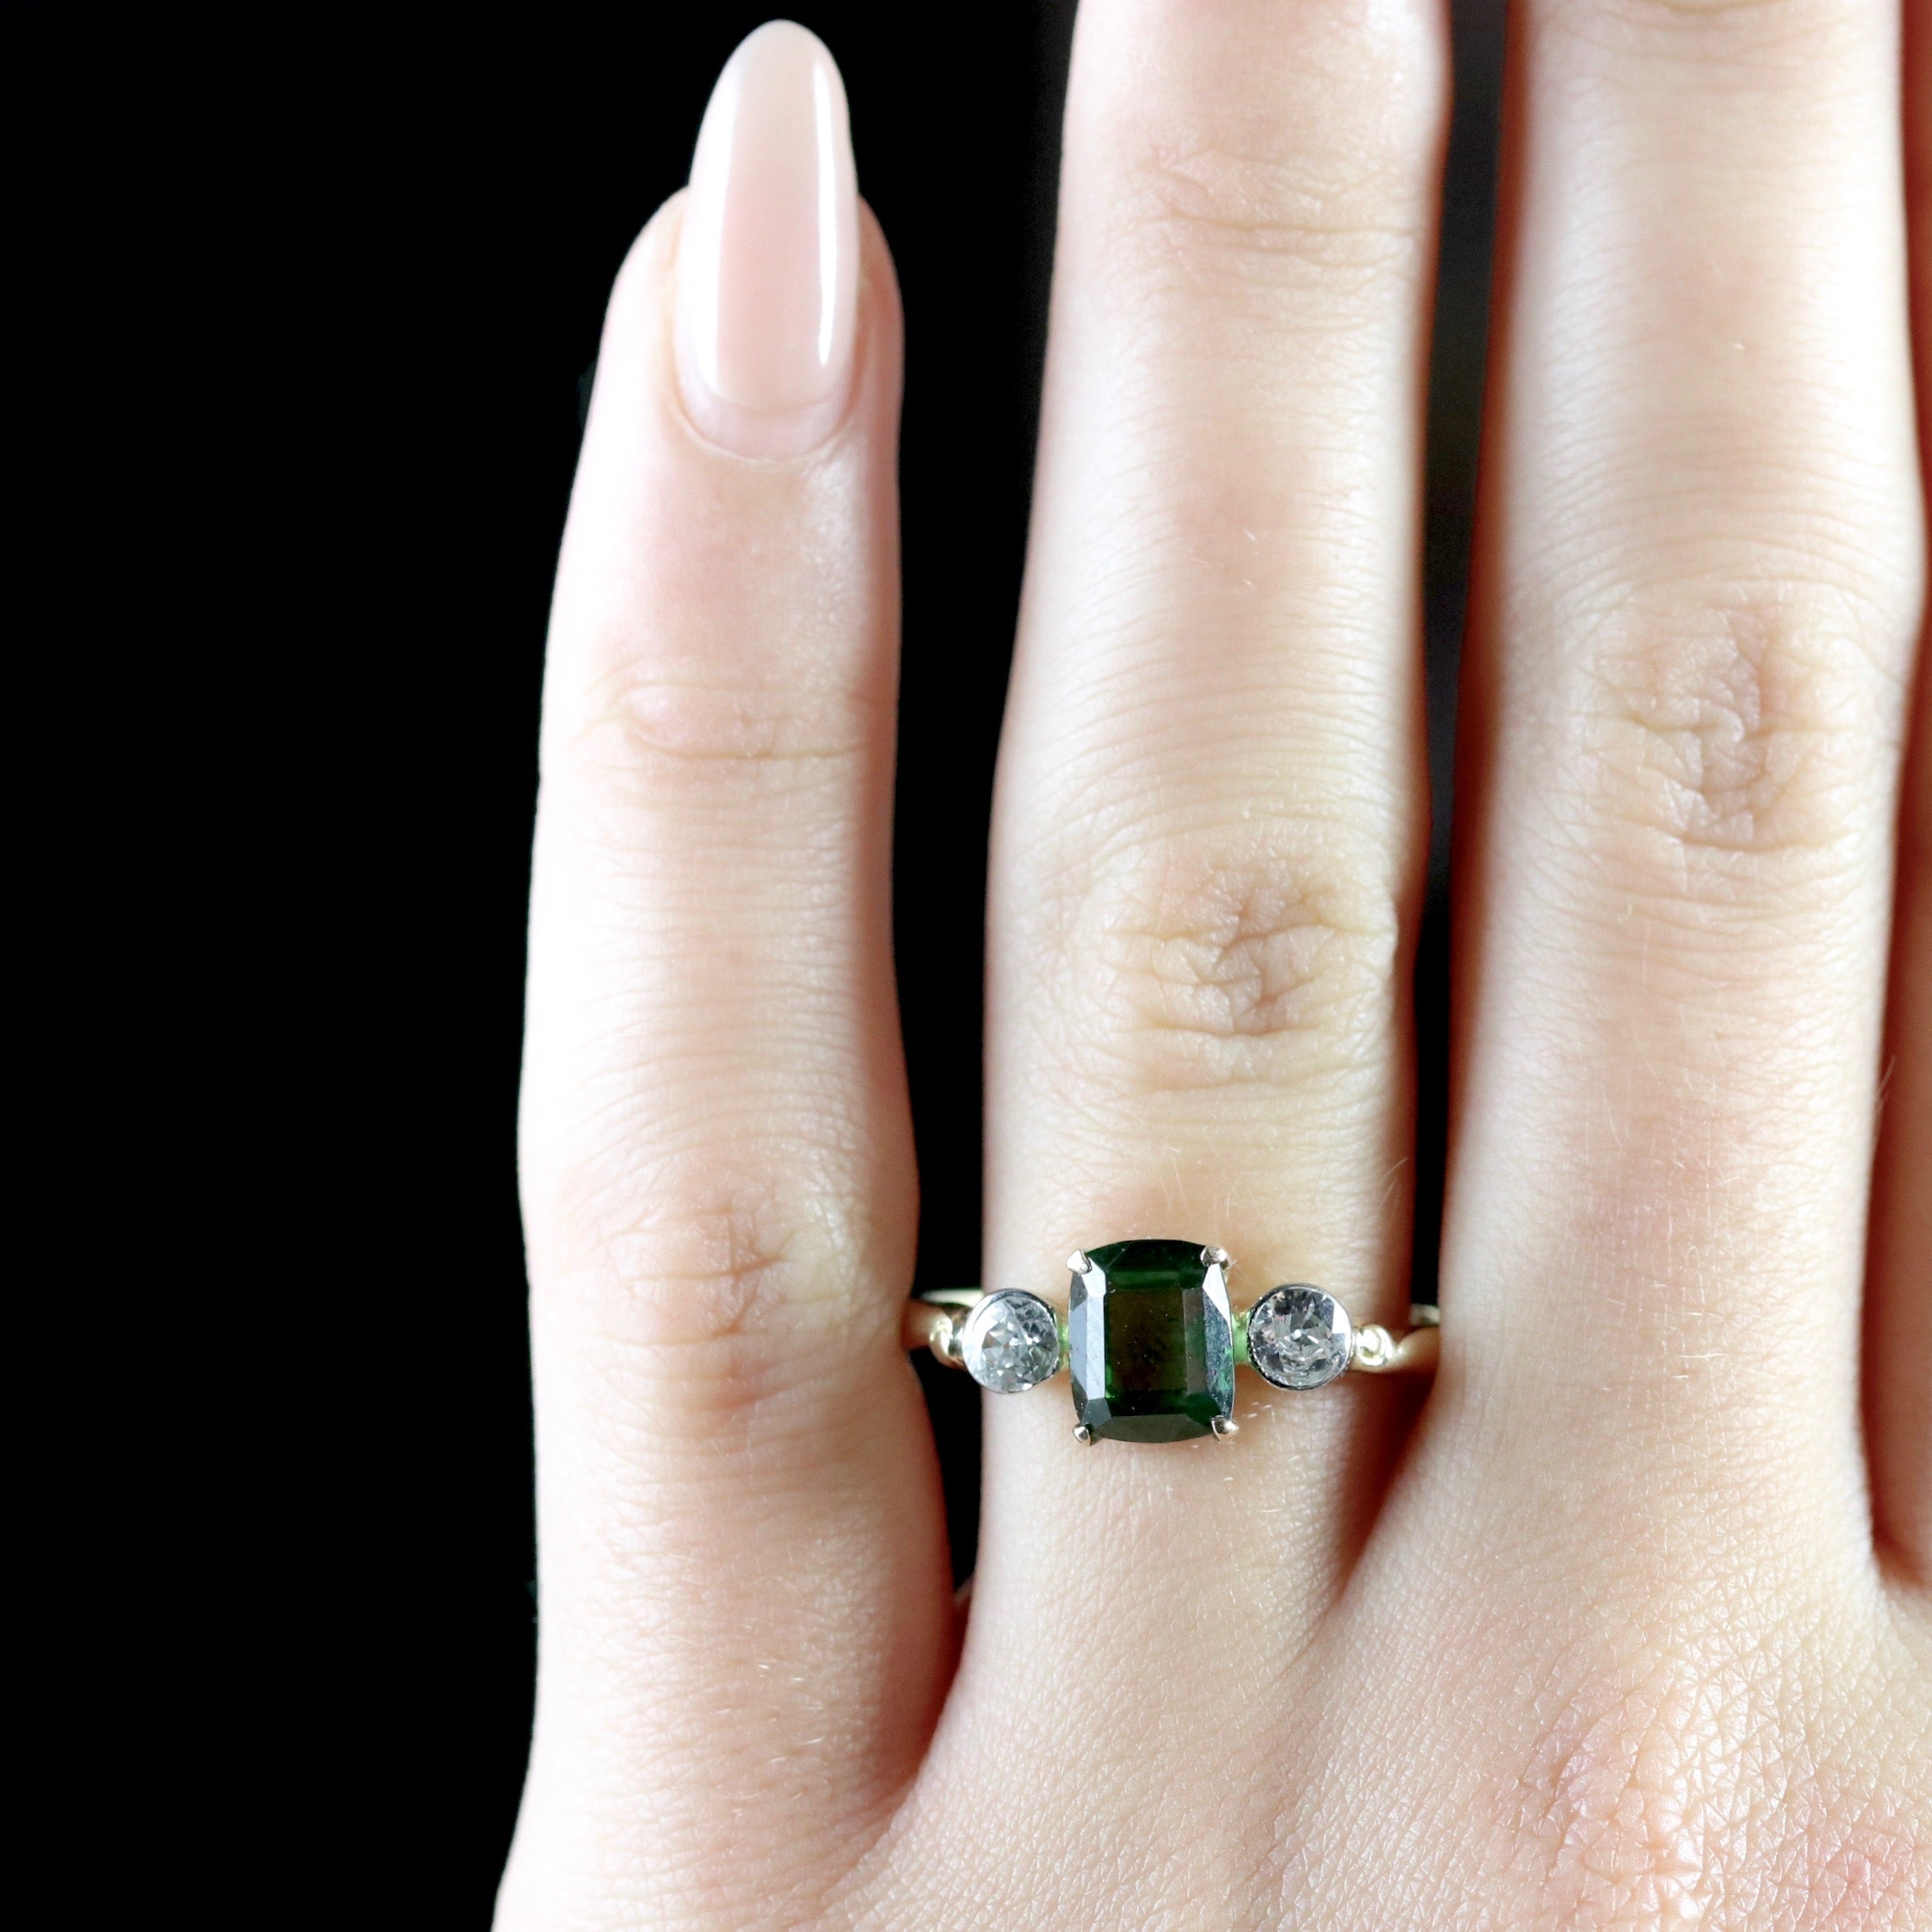 weight gold file band round total averygrovesjewelry rings price green ring forged tourmaline chrome stone